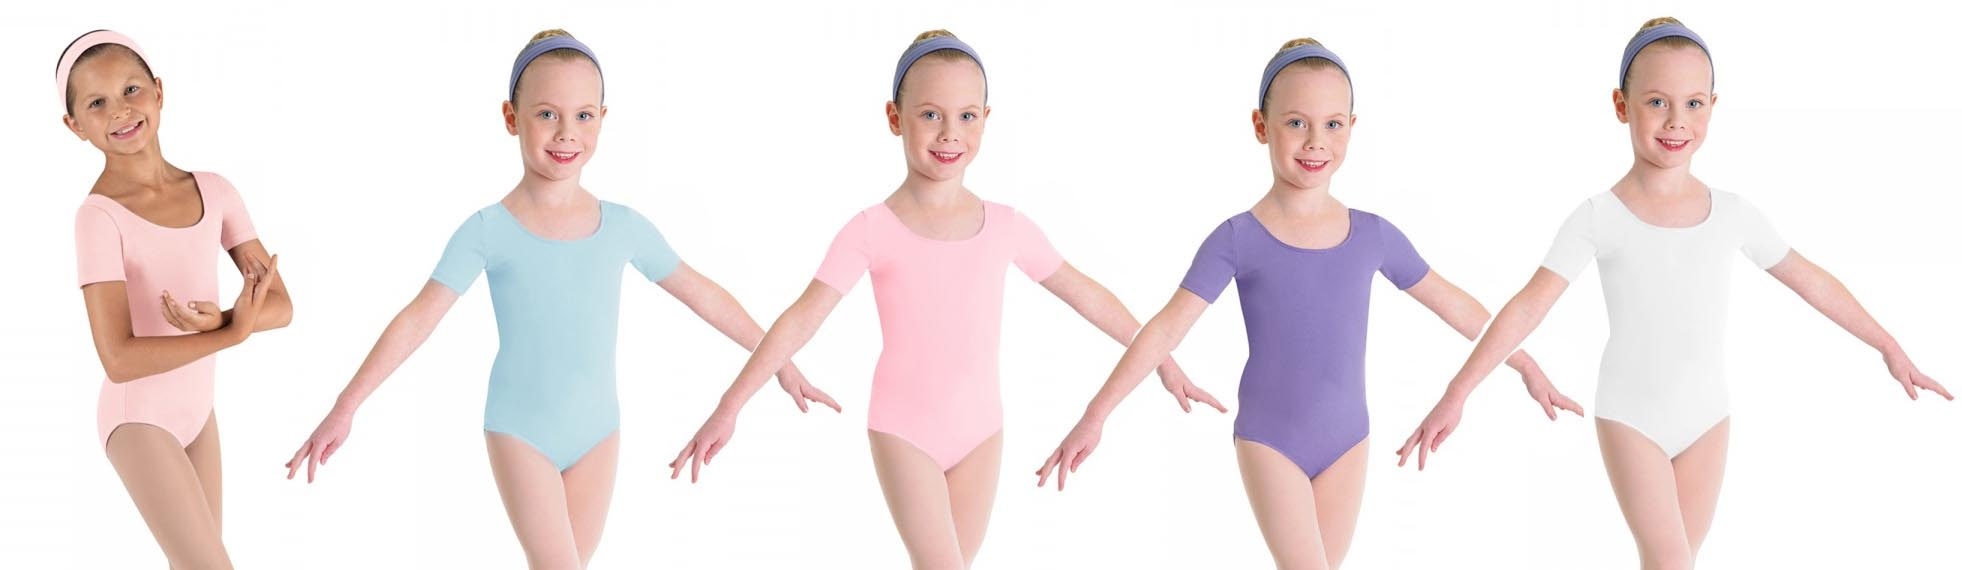 bloch bl5402 childrens short sleeve leotard color swatch 2